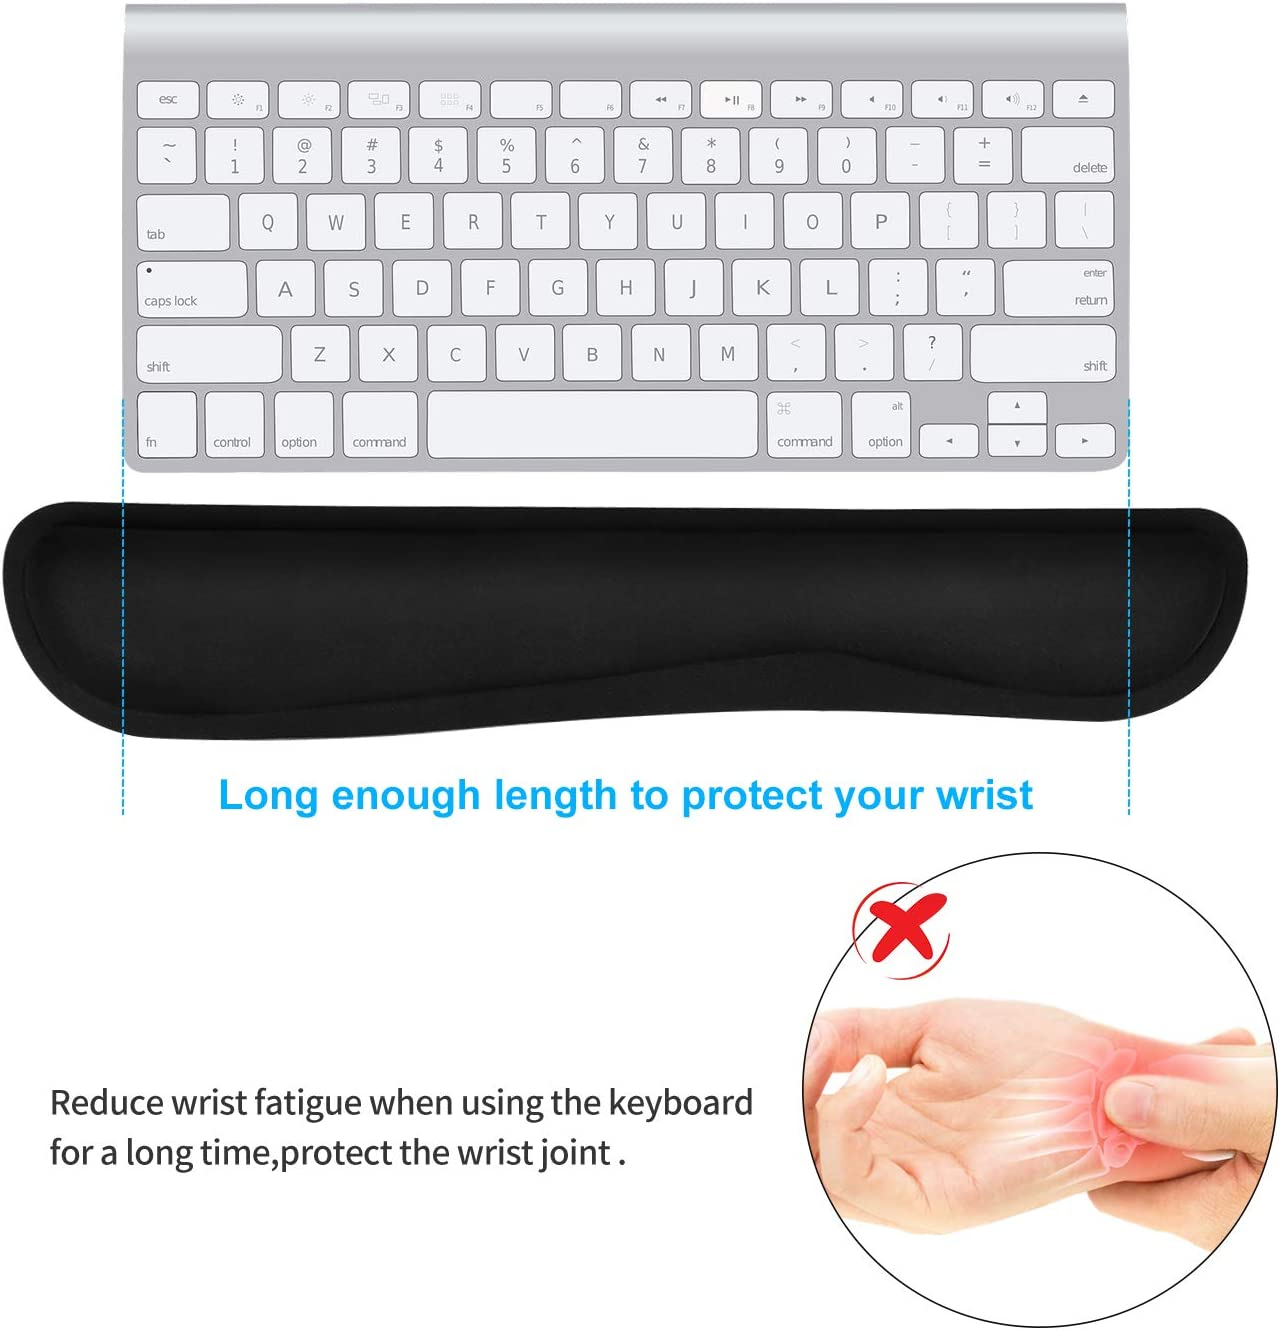 Computer and Home Memory Foam Keyboard and Mouse Wrist Rest Support for Easy Typing/&Pain Relief Lightweight Wrist Cushion Fit for Office